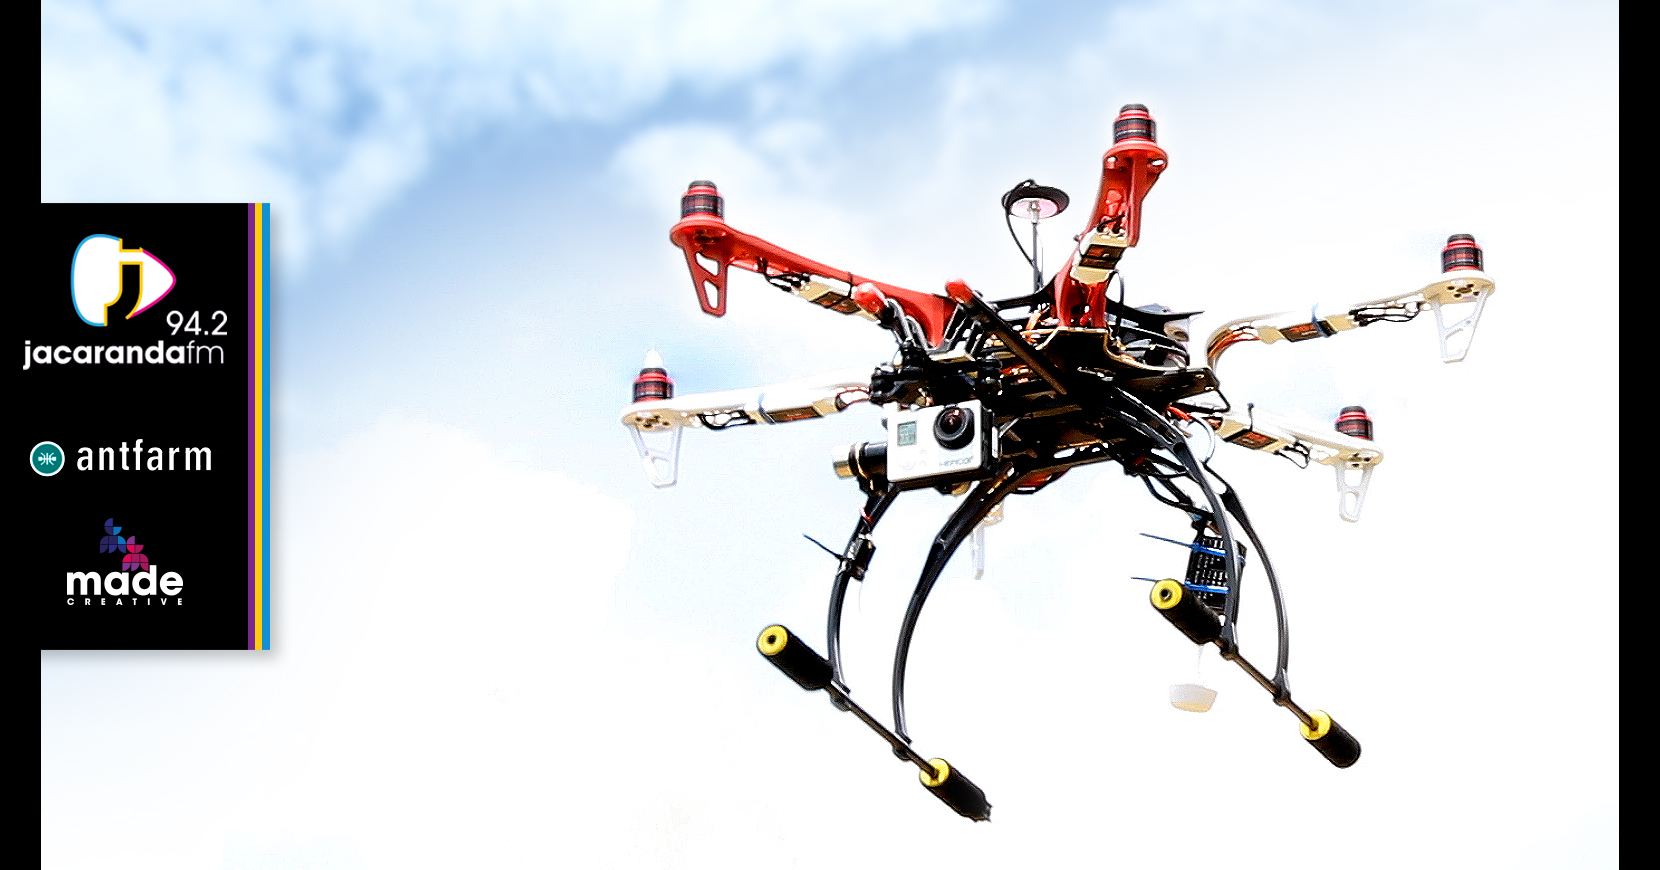 End Is Nigh For Traffic – Jacaranda FM and drones